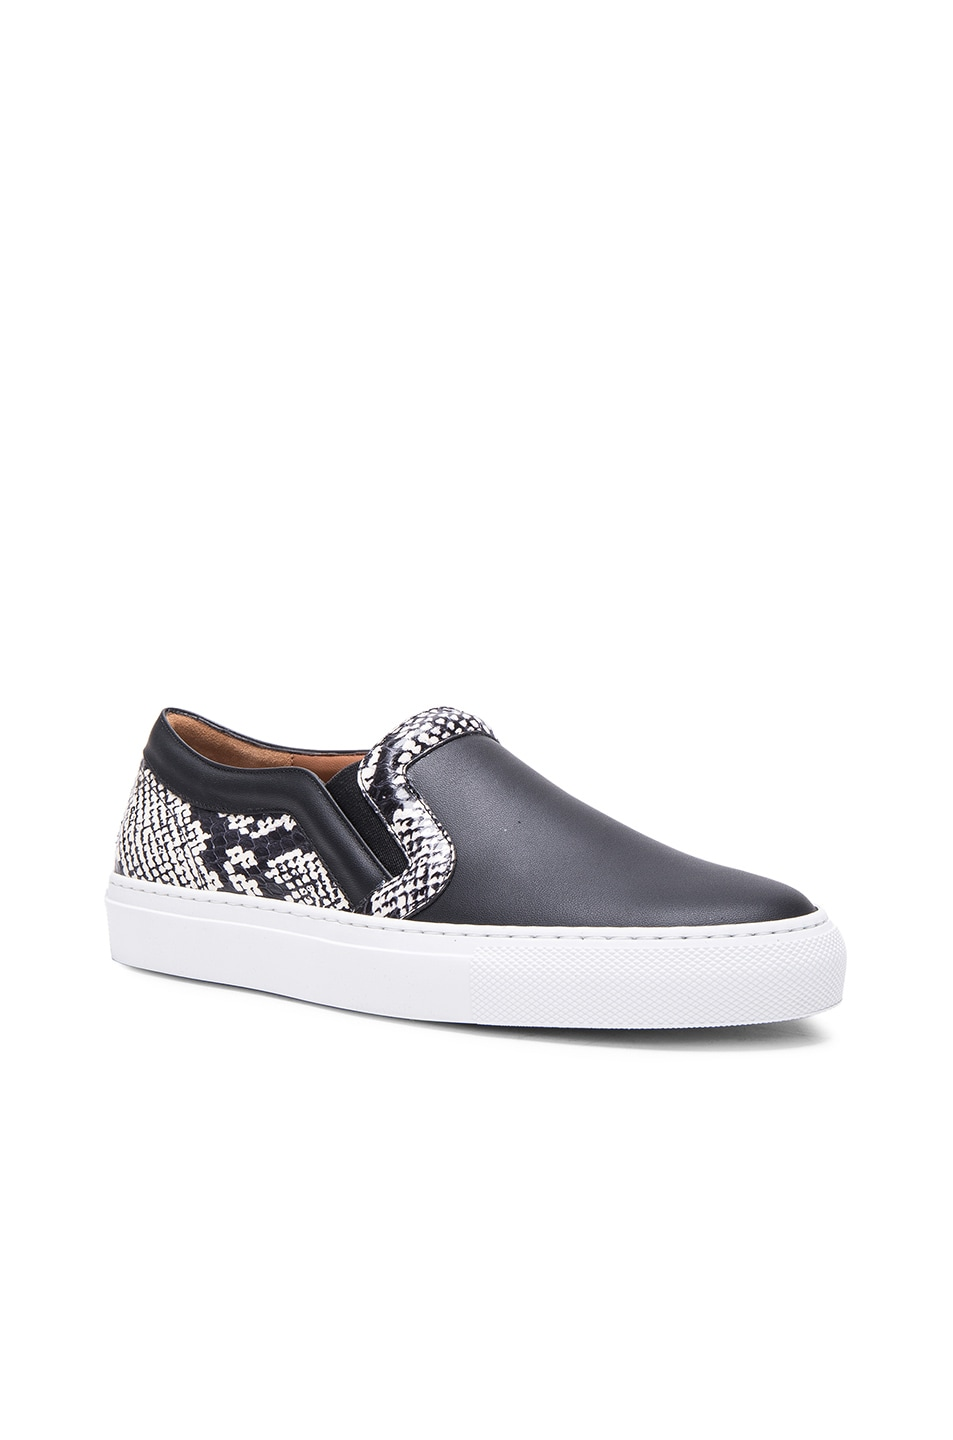 Image 2 of Givenchy Low Skate Elaphe Sneakers in Black & White